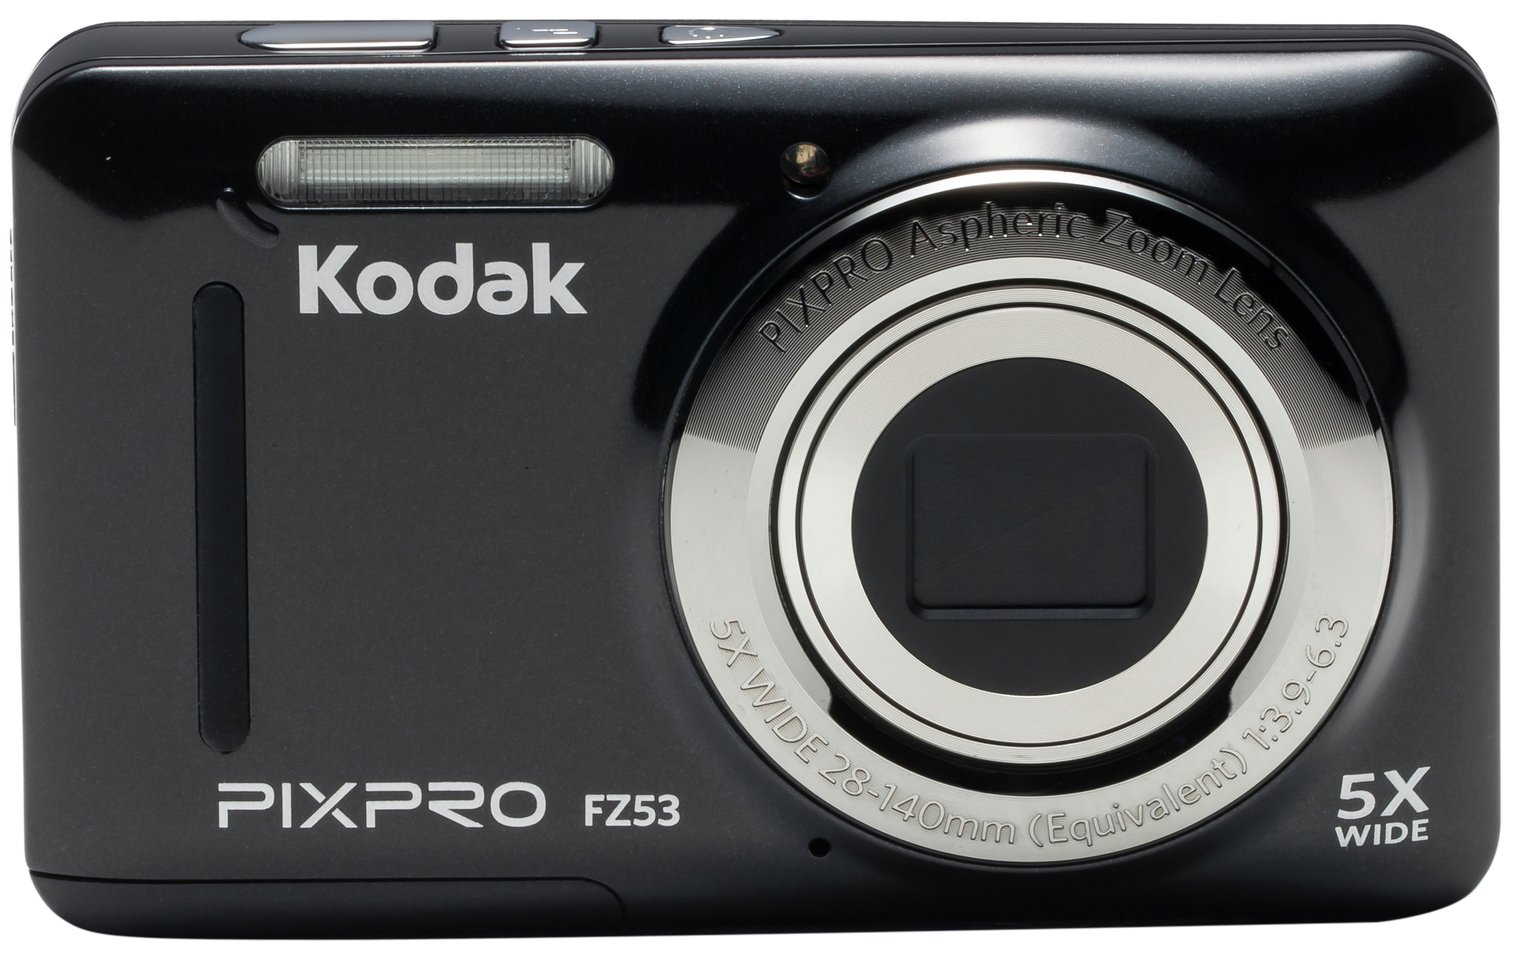 Kodak PixPro FZ53 Mirrorless Camera With 5.1-25.5mm Lens - Black from Kodak PixPro